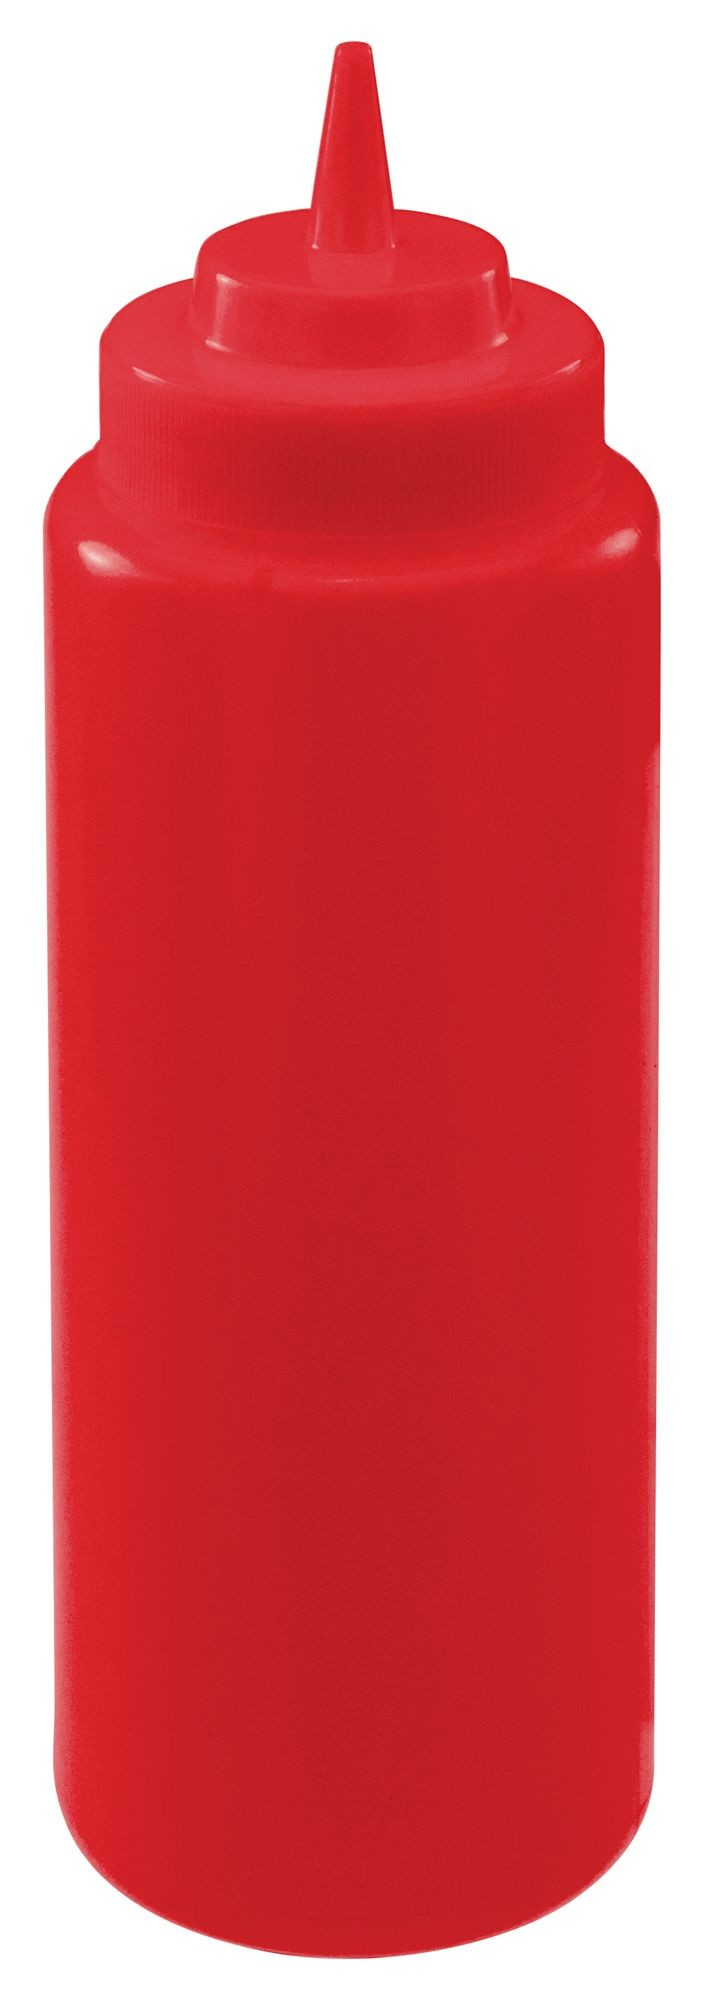 Winco PSW-32R Red Plastic 32 oz. Wide-Mouth Squeeze Bottle